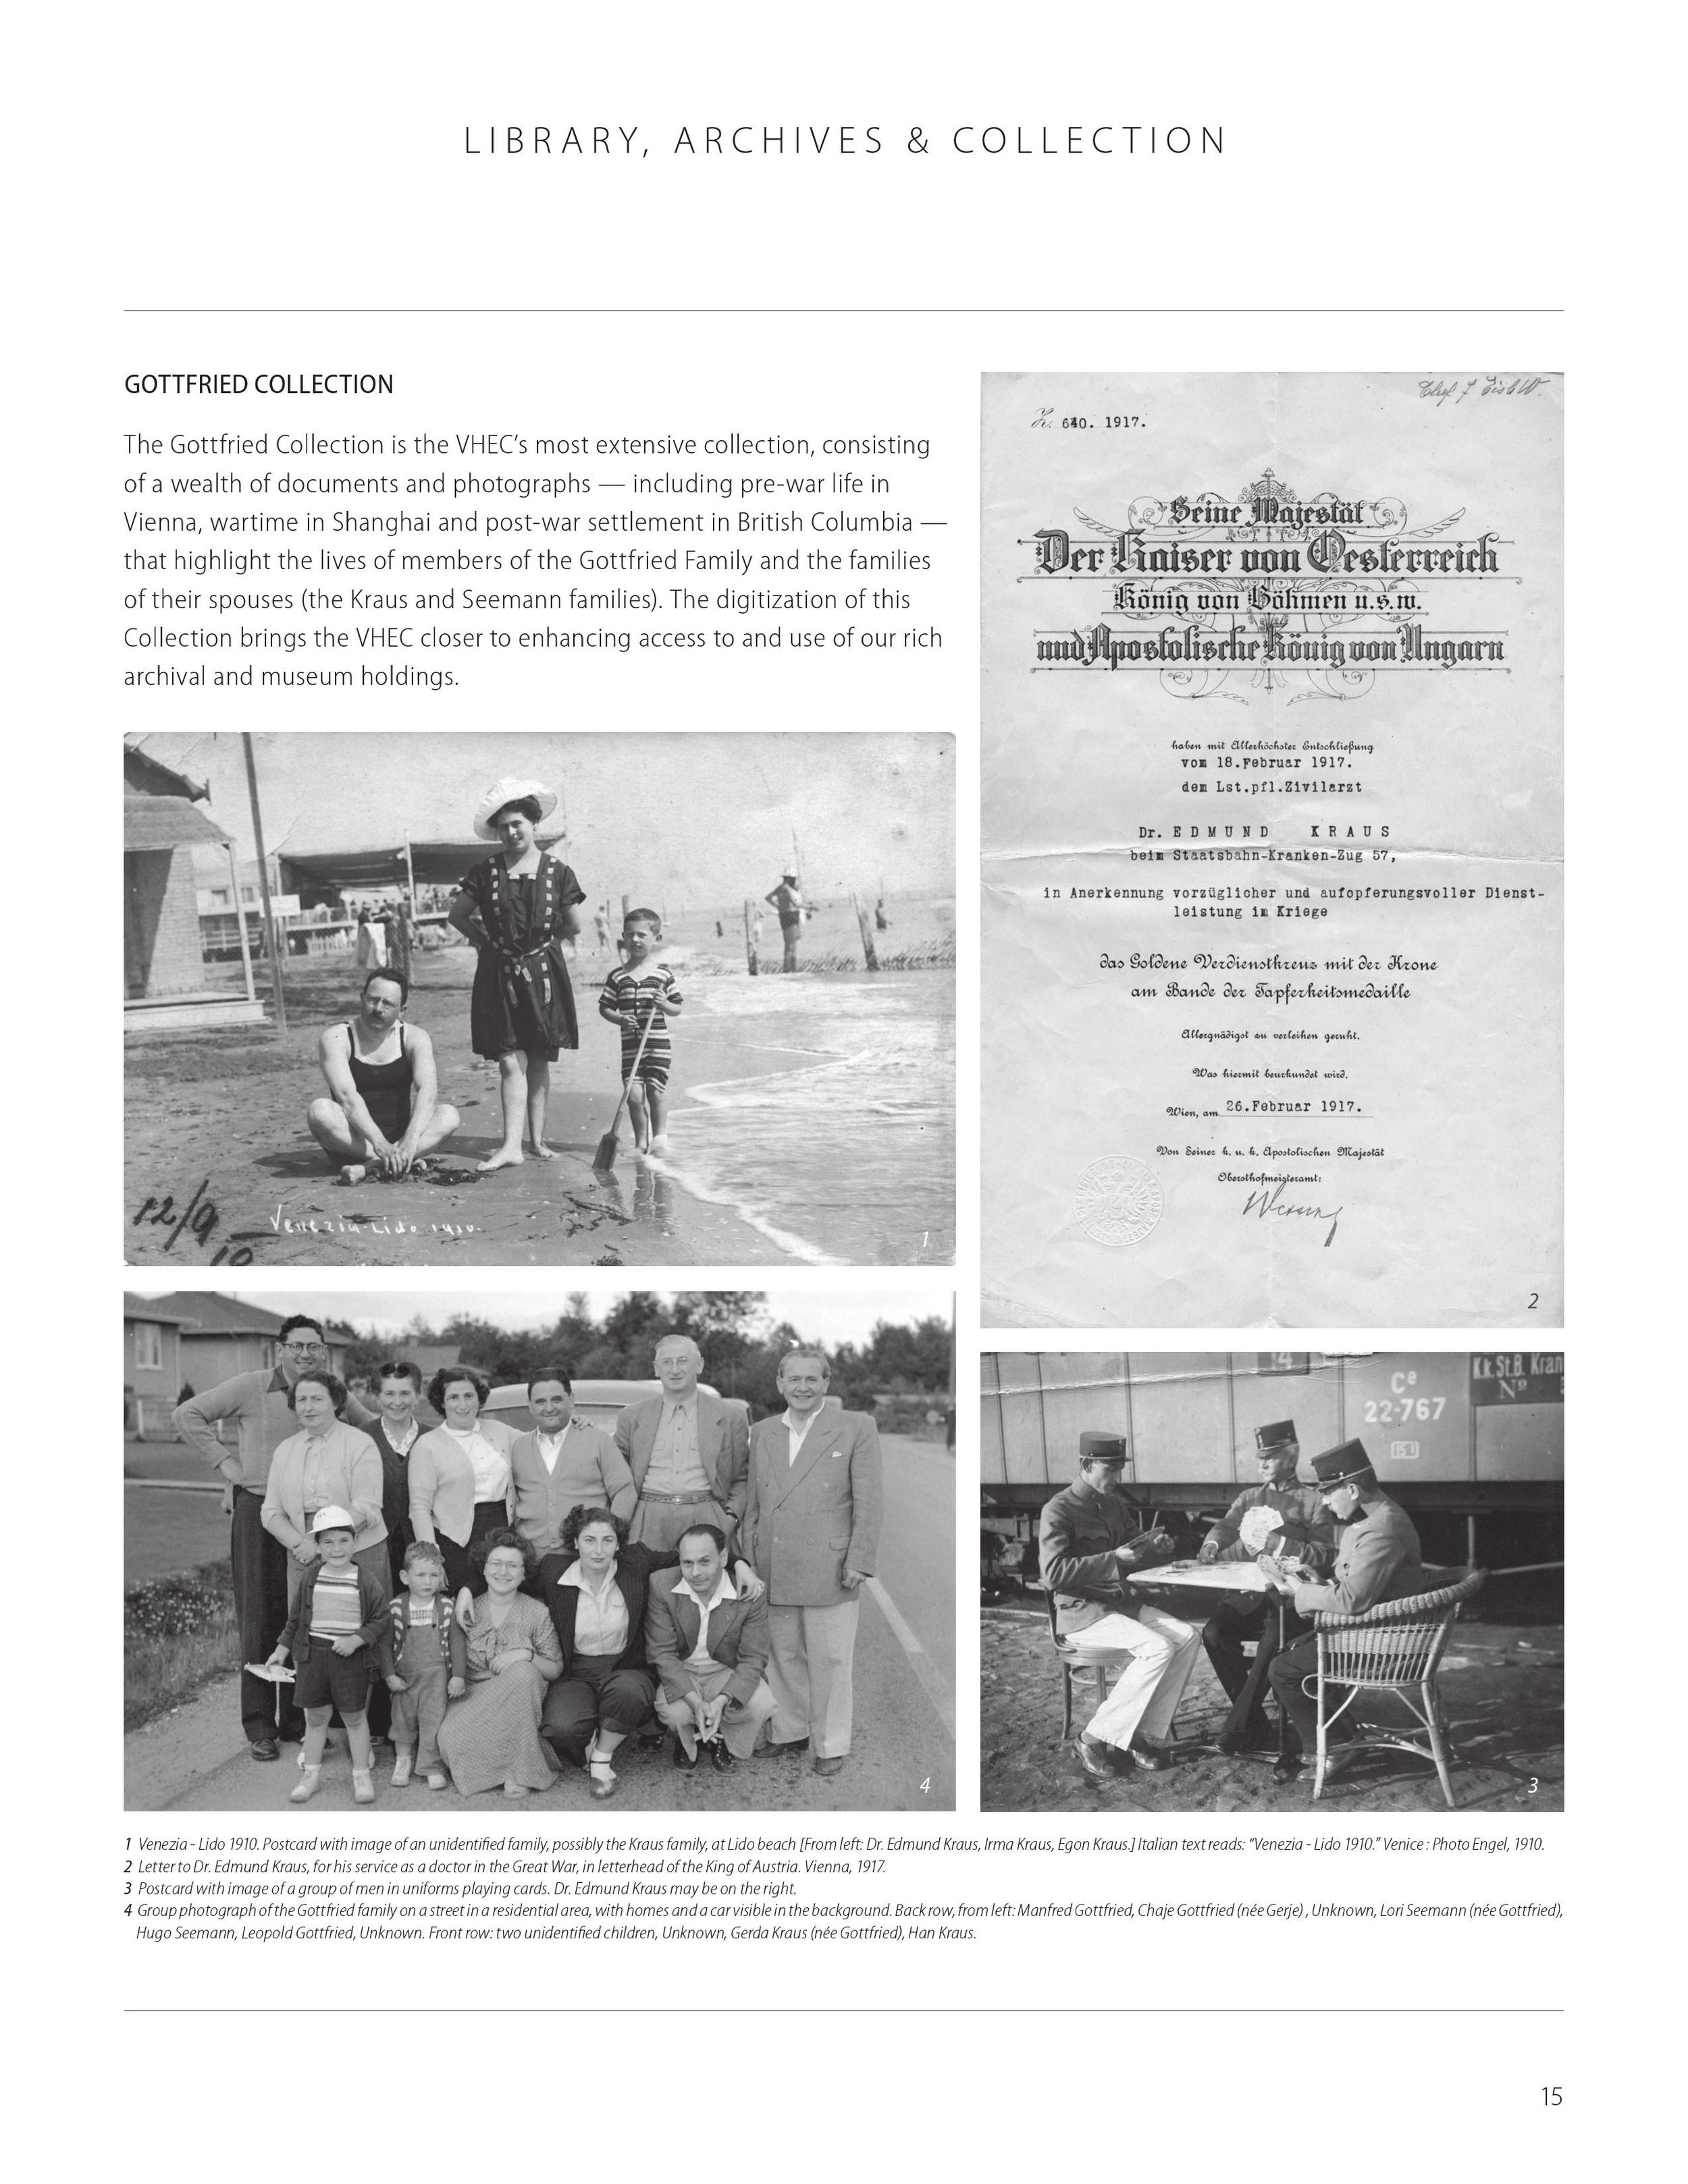 """Vancouver Holocaust Education Center, """"Gottfried Collection,"""" VHEC Annual Report 2014, page 15. Content by the VHEC Collections team. Design by Illene Yu. Courtesy of the VHEC."""